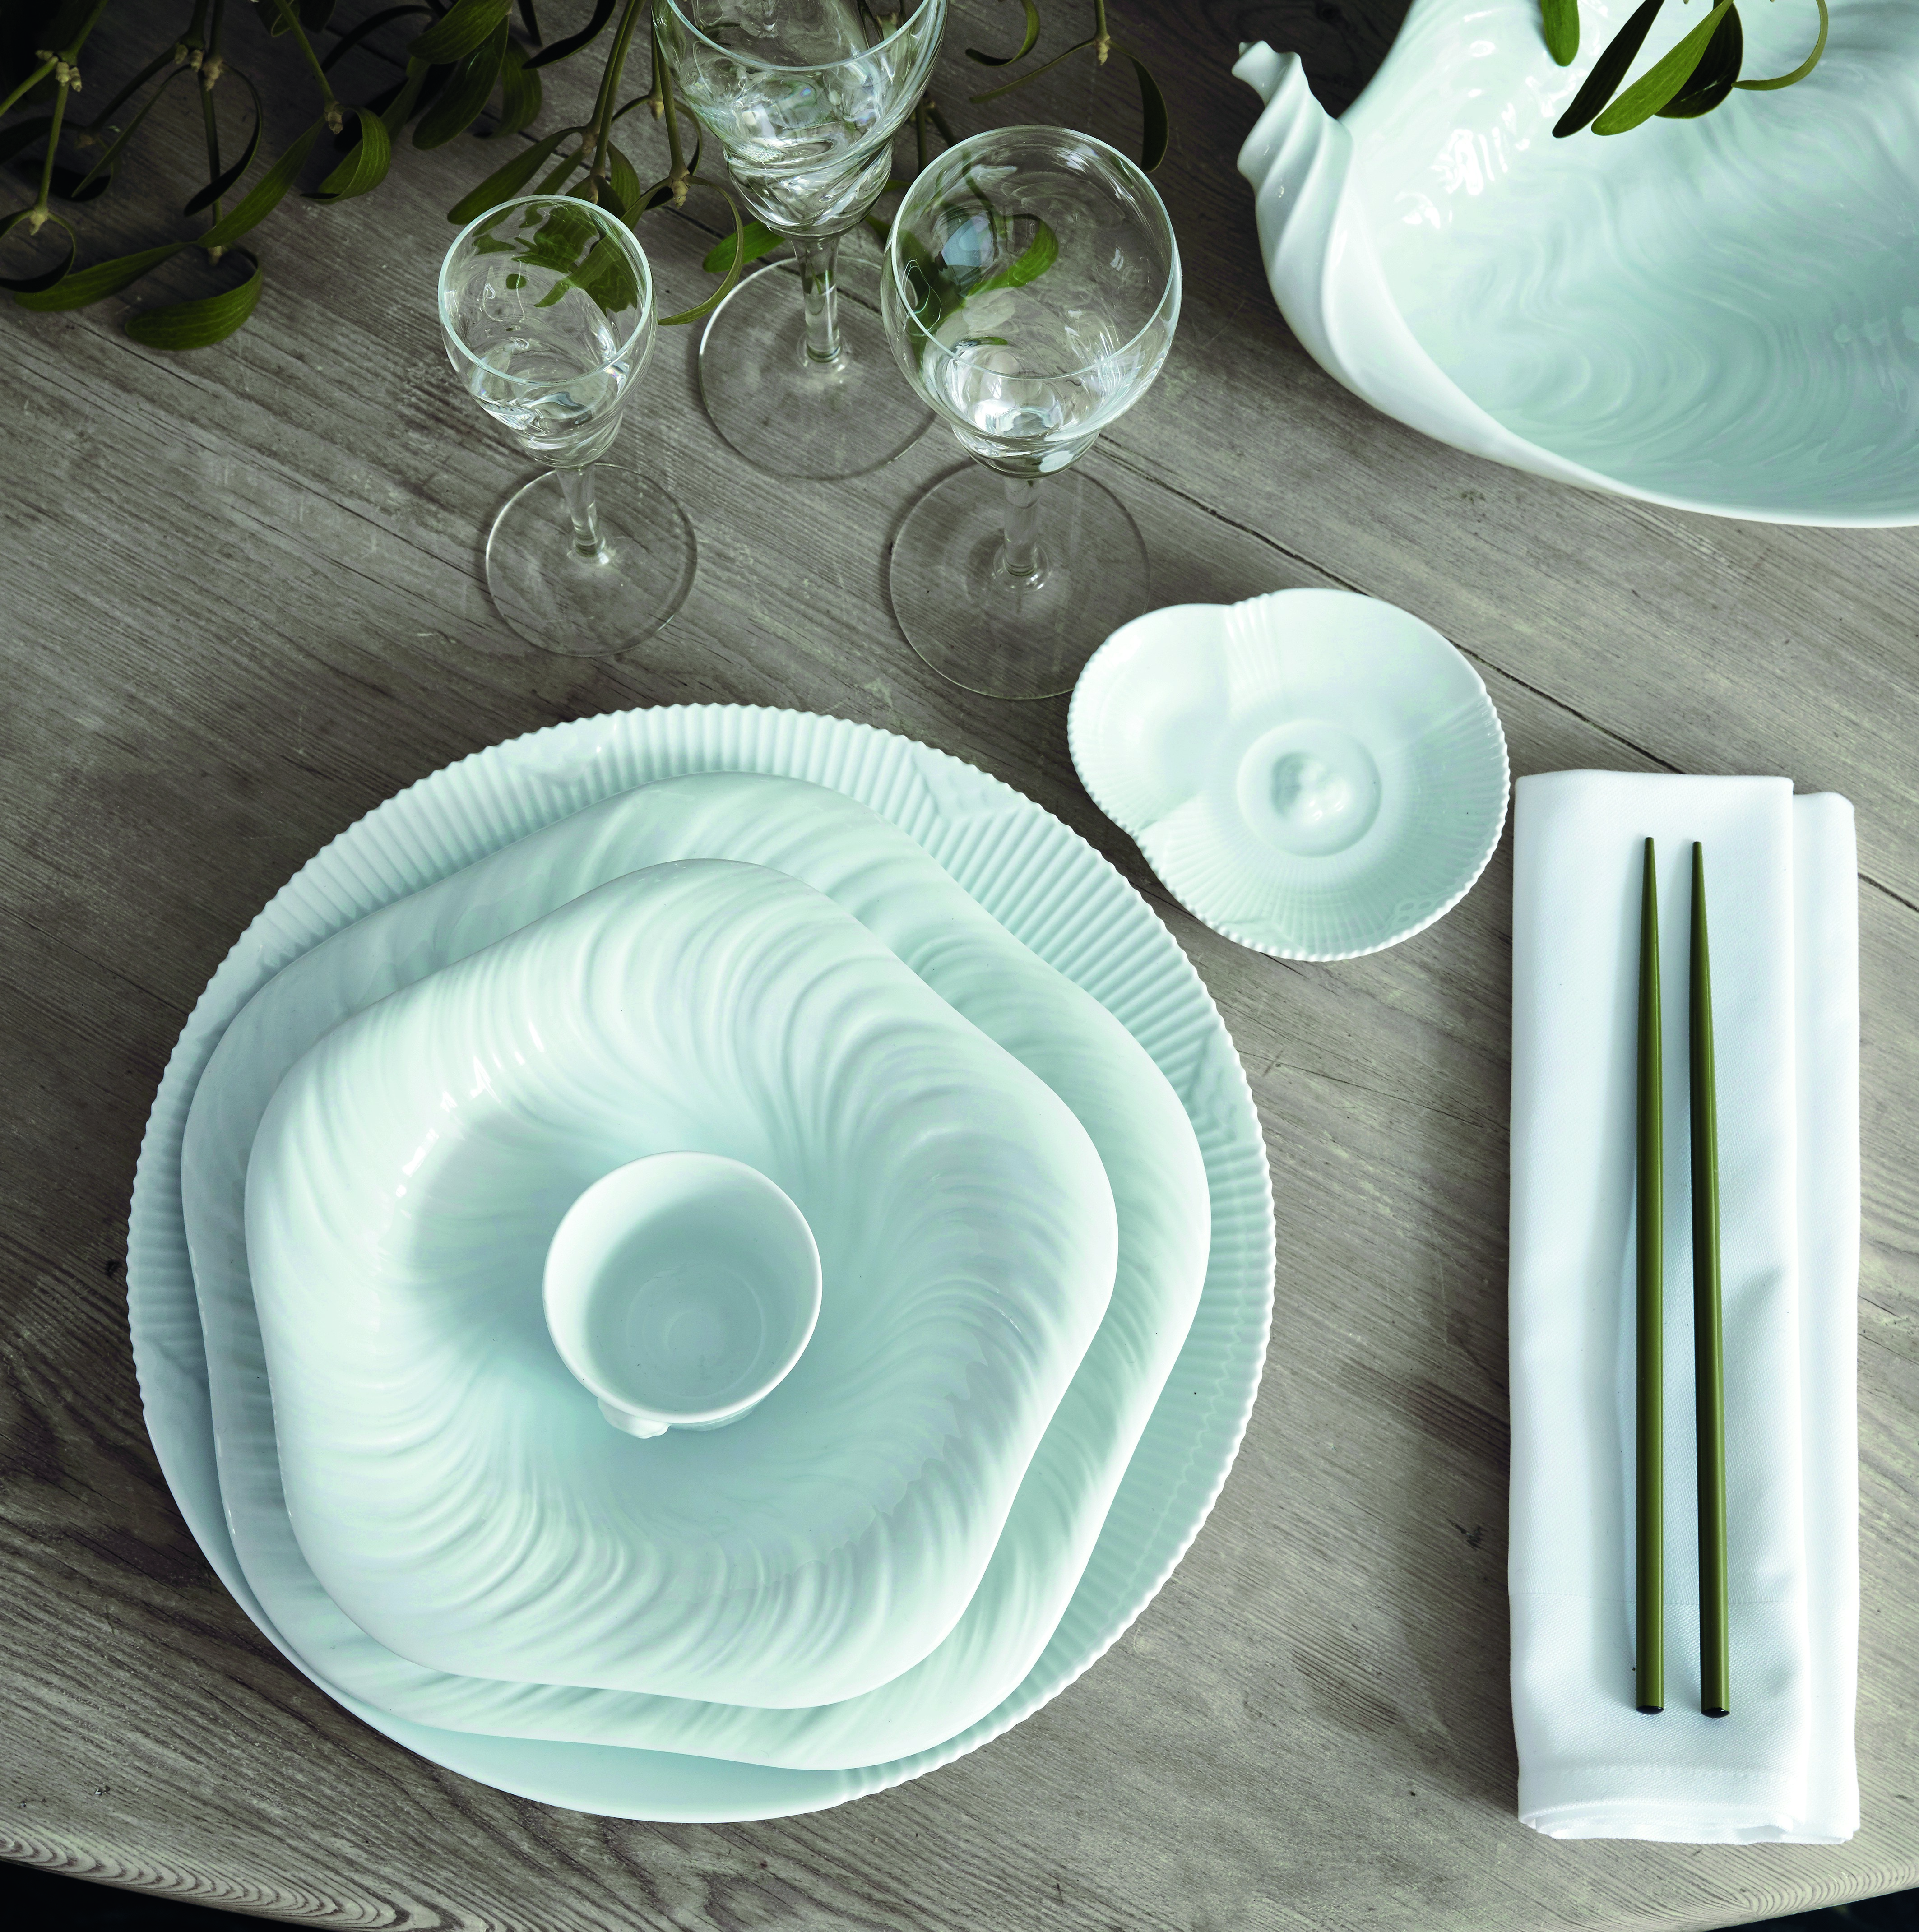 fashionable Christmas - Mark Tan's traditional Scandinavia table with natural greenery takes on a dramatic organic white-on-white affect with Arje Griegst's Conch series dishware - Royal Copenhagen via Atticmag